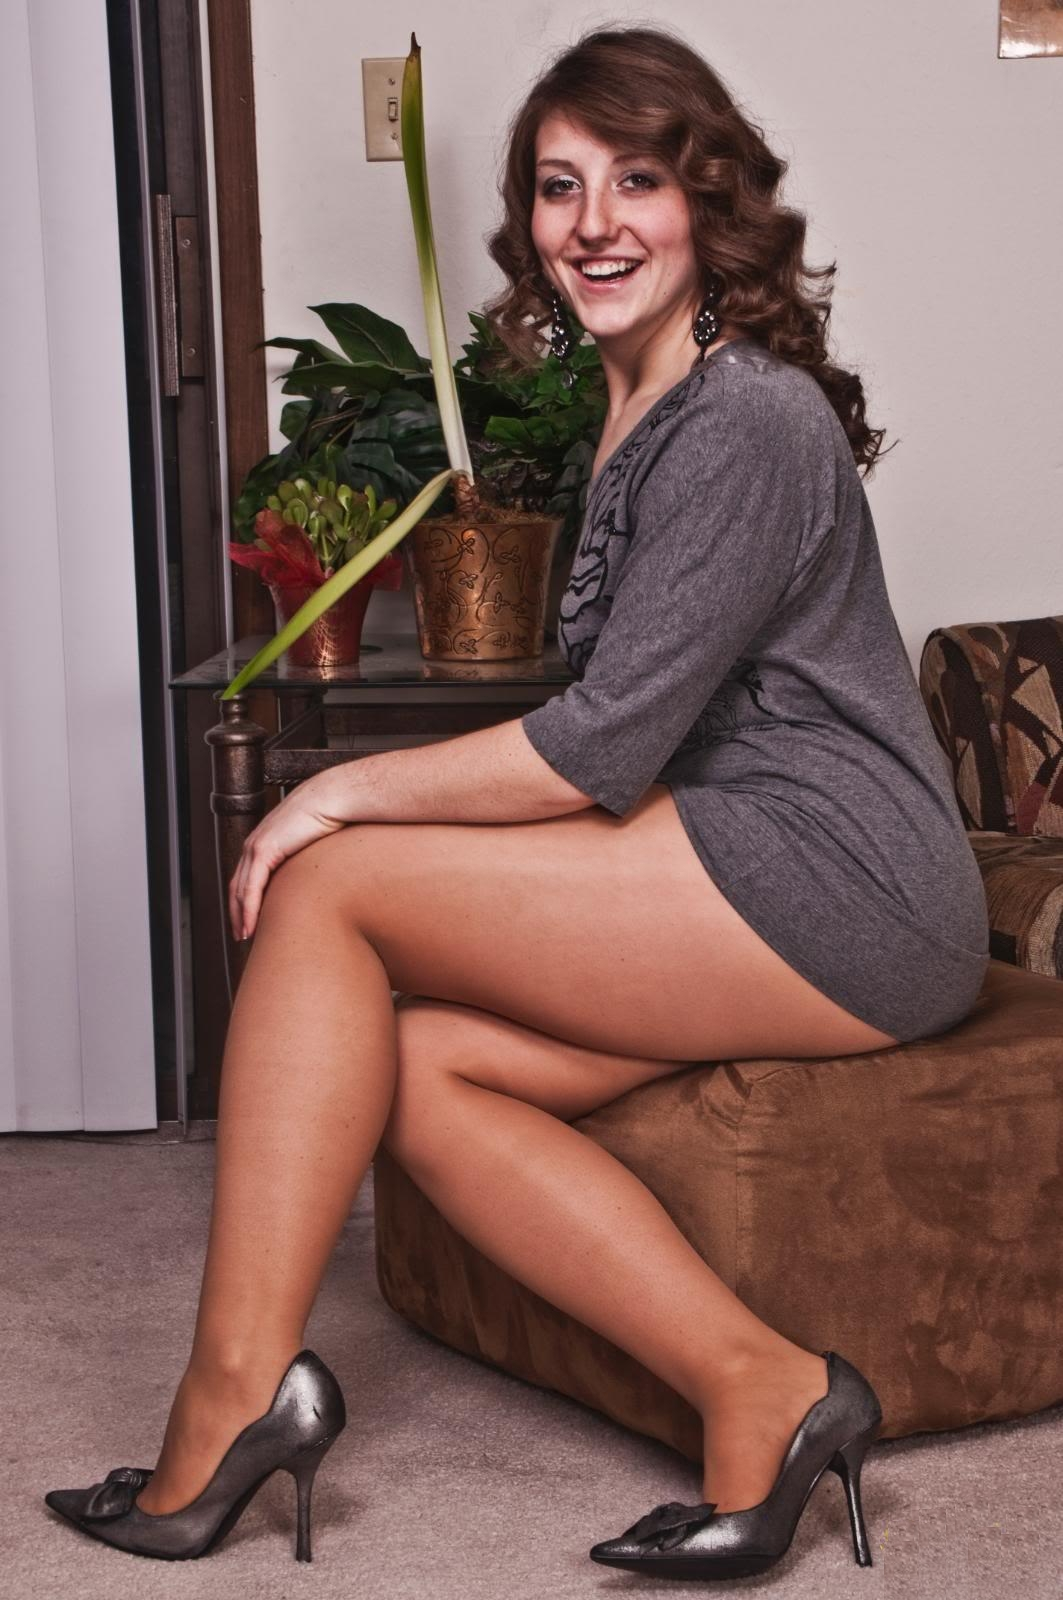 Fuck girl chubby legs in nylons college